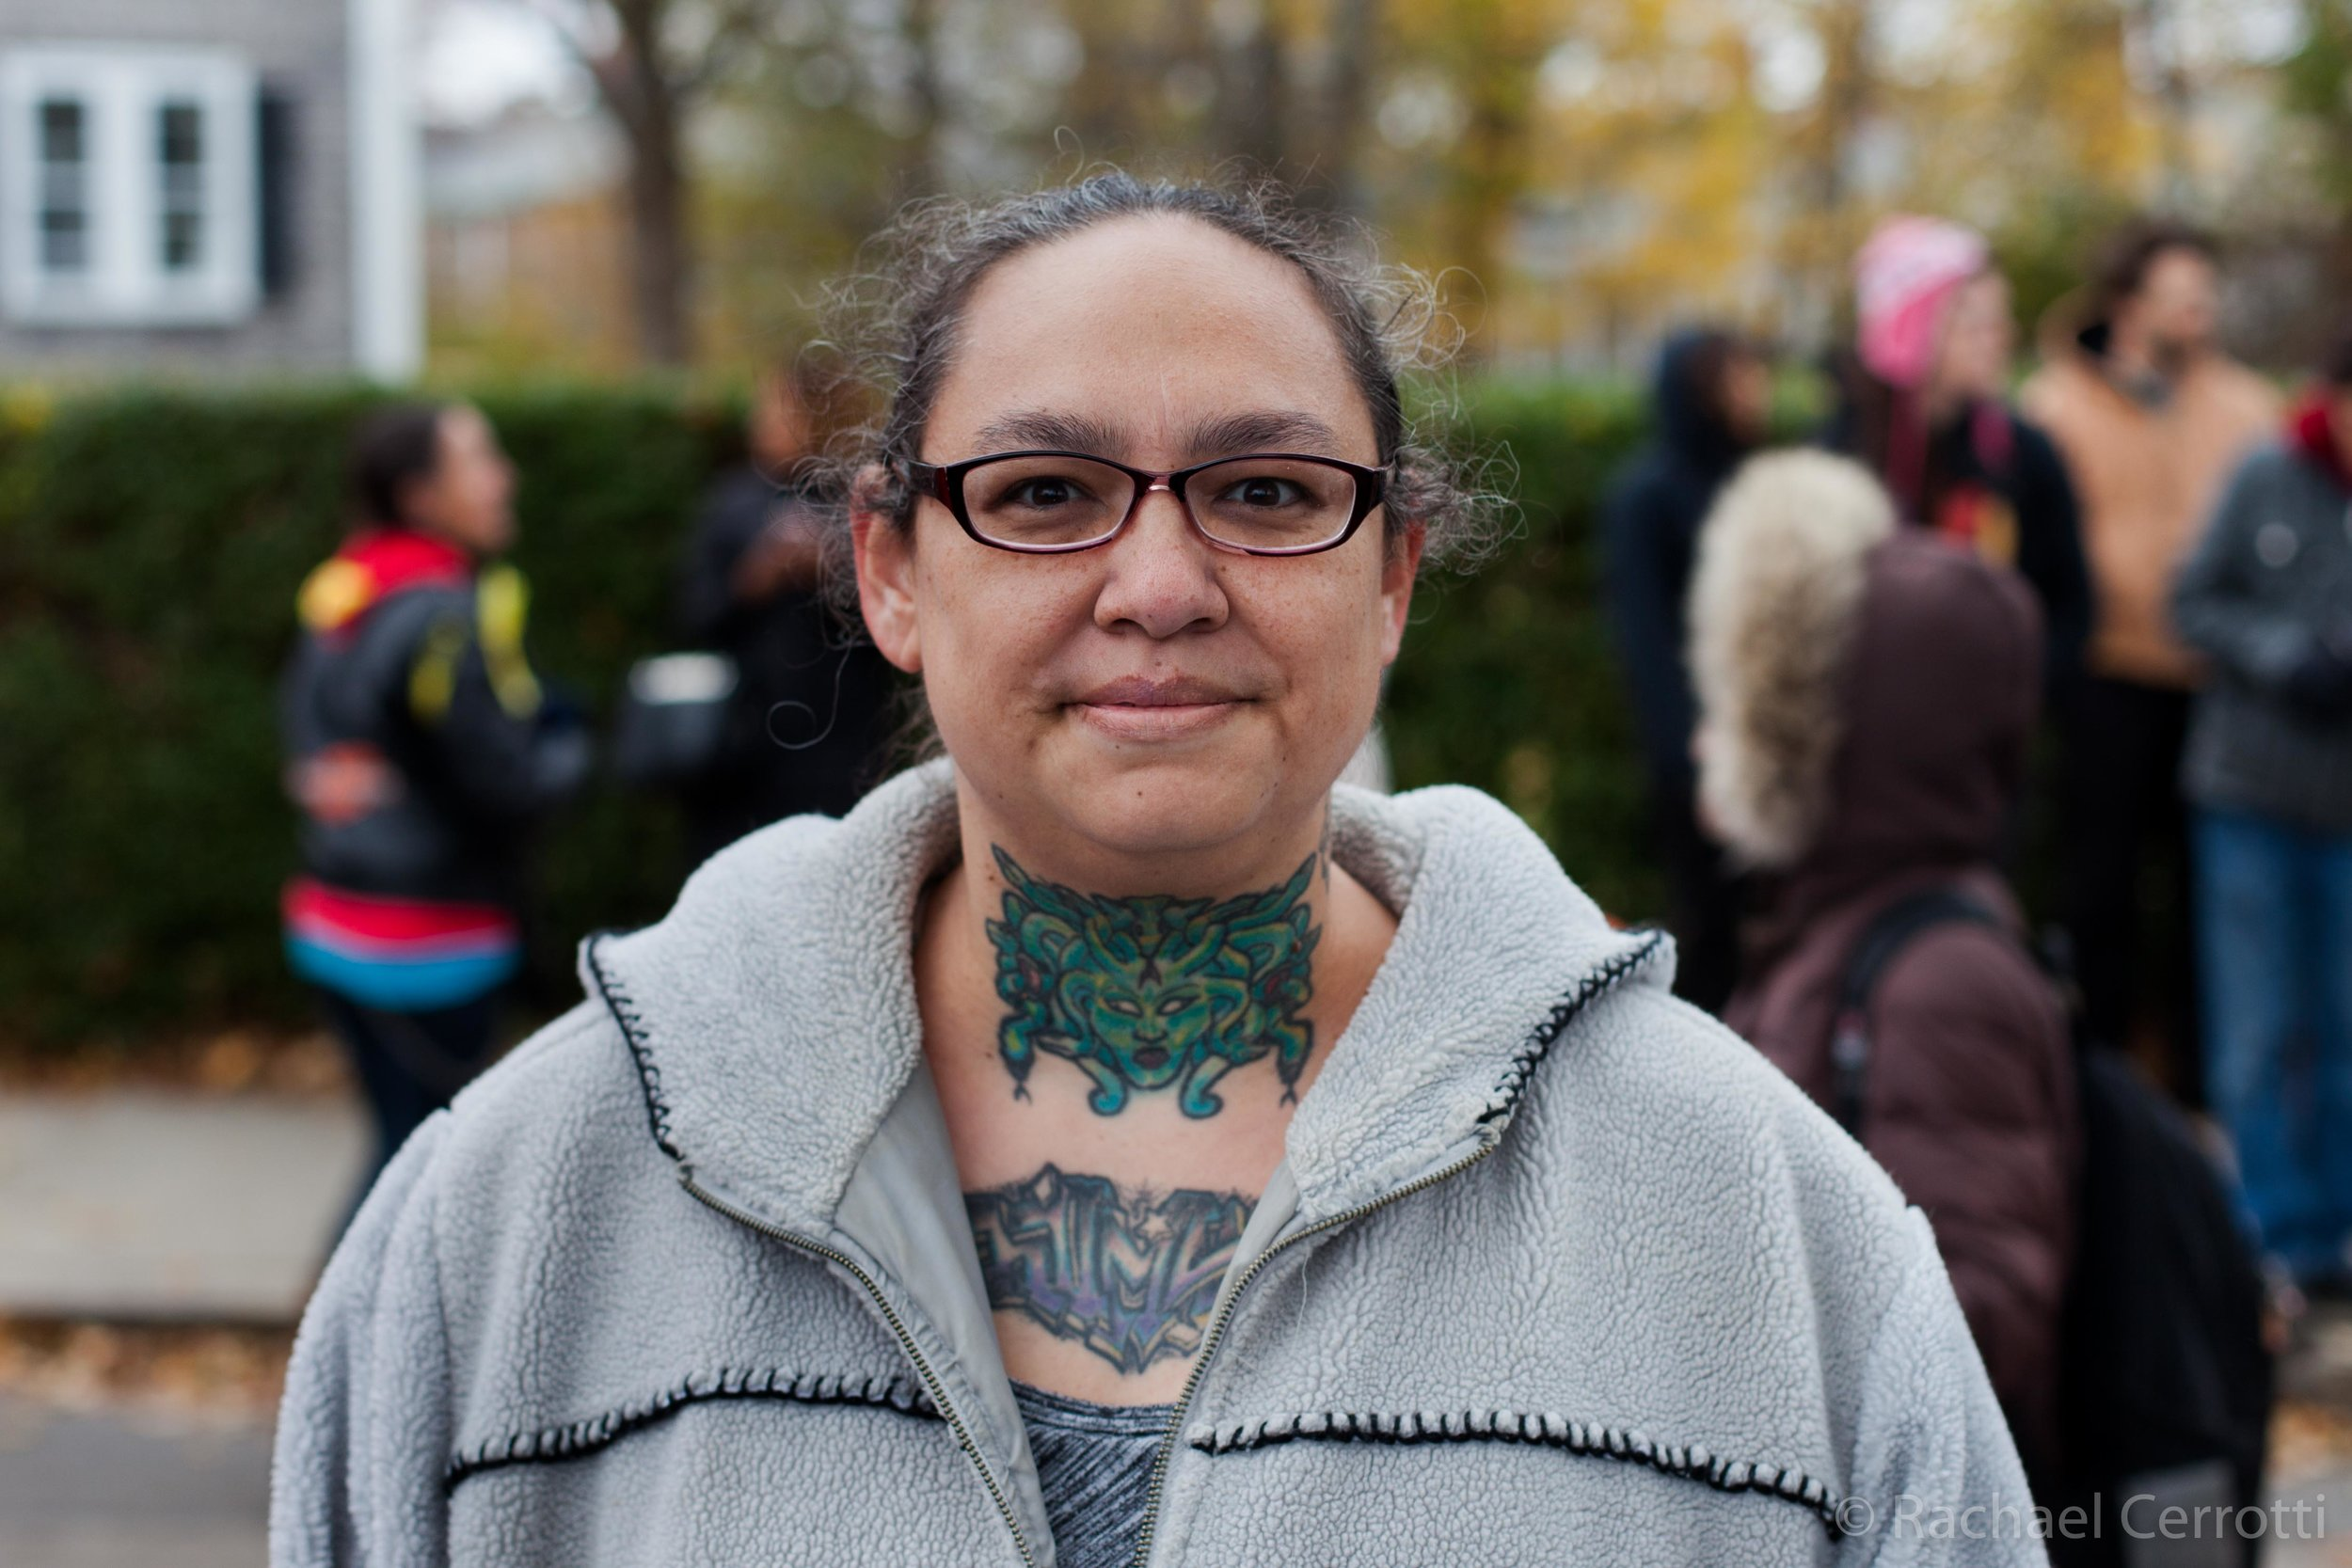 Melody O'Brian of Newport, Rhode Island, comes from Cherokee nation.